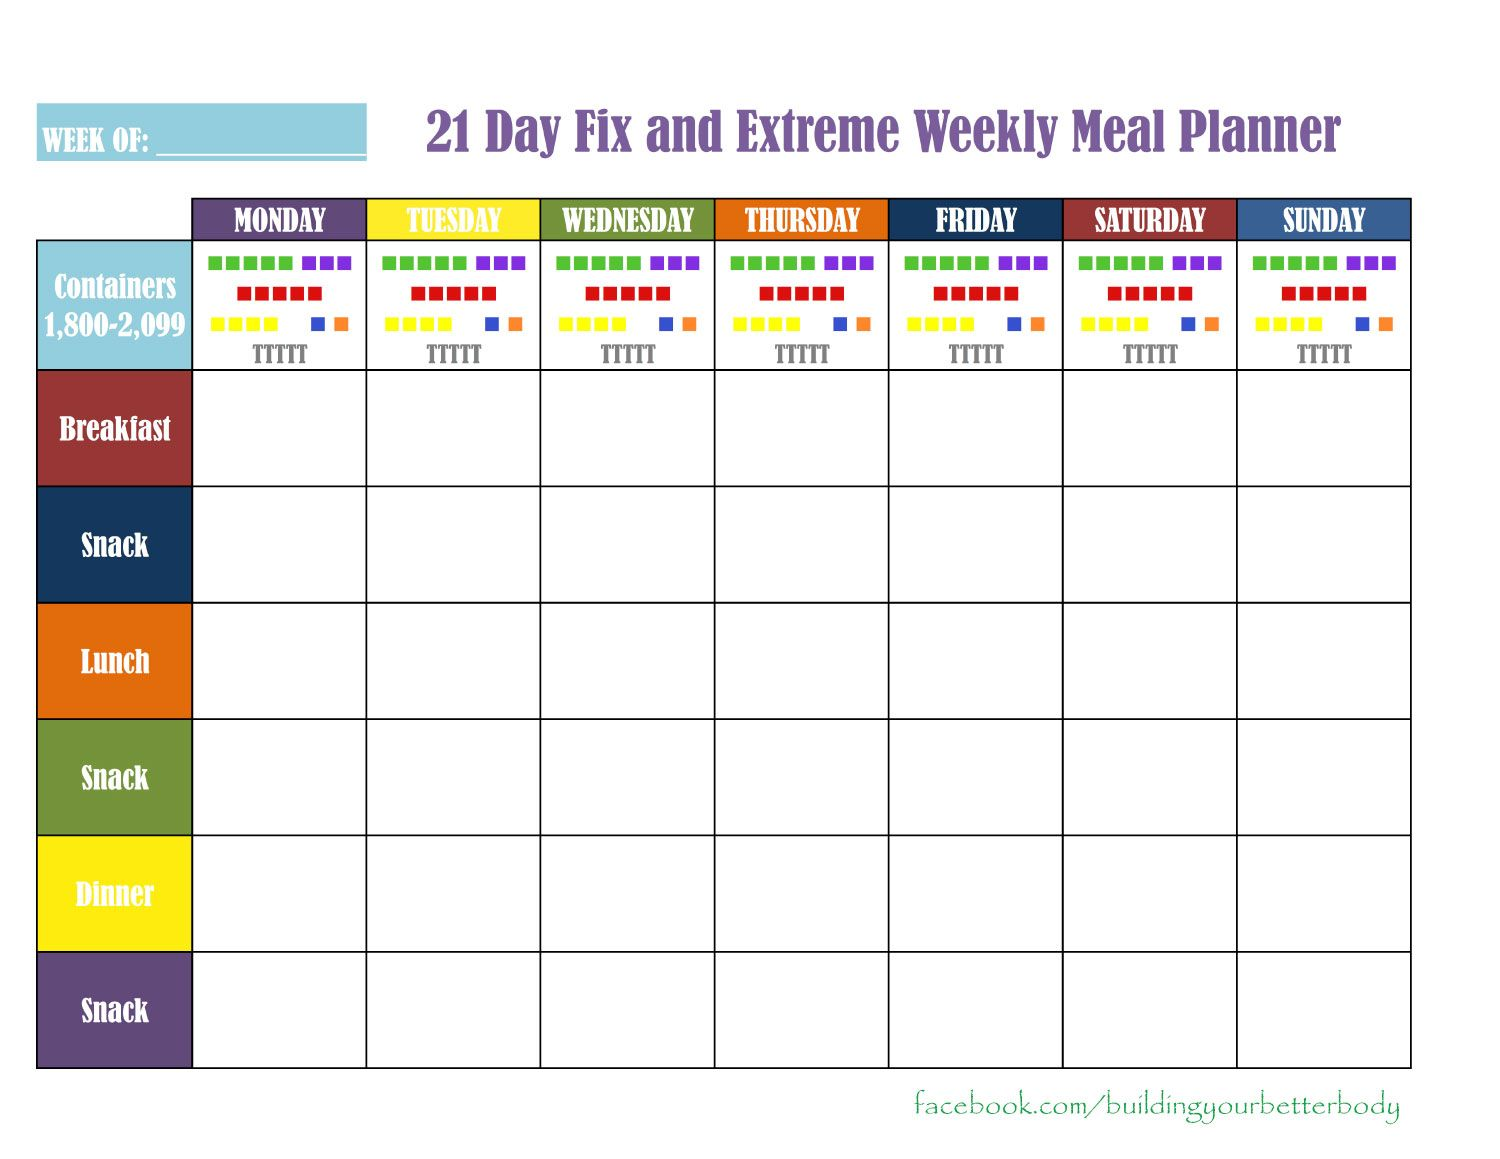 21 Day Fix Weekly Meal Planning Sheet For The 1800 2 099 Calorie Range